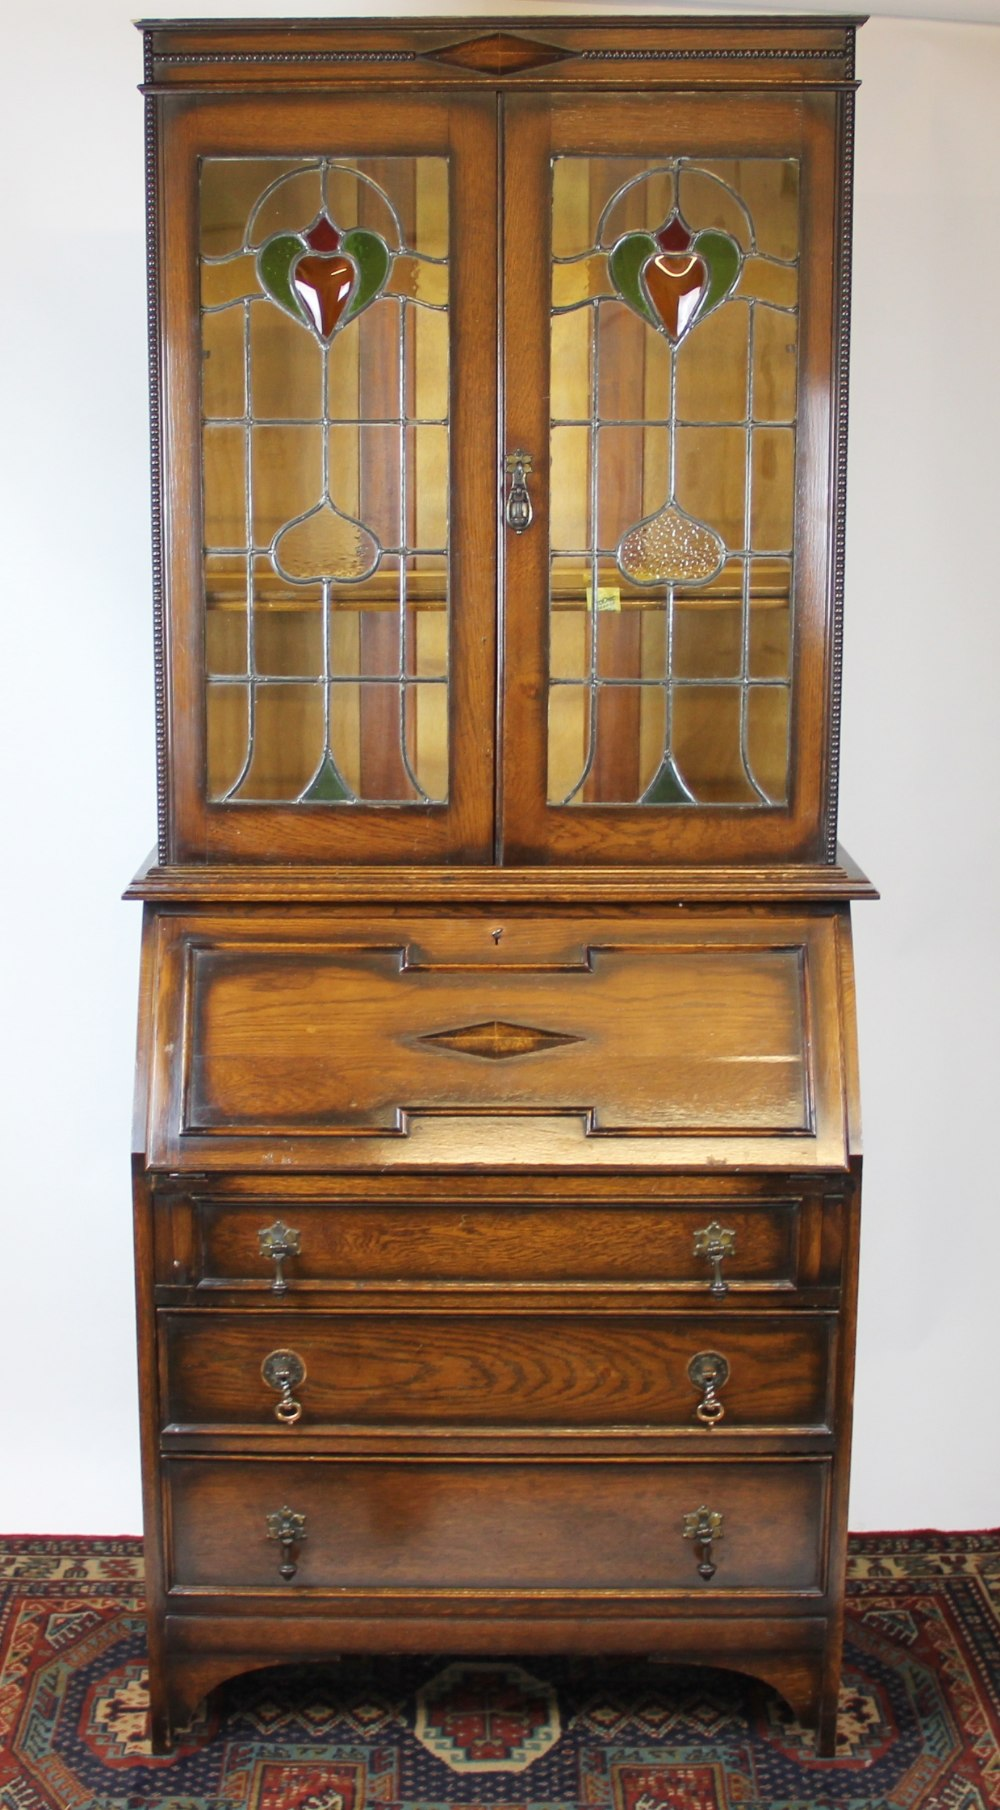 An Edwardian mahogany bureau bookcase, with two Art Nouveau stained ...